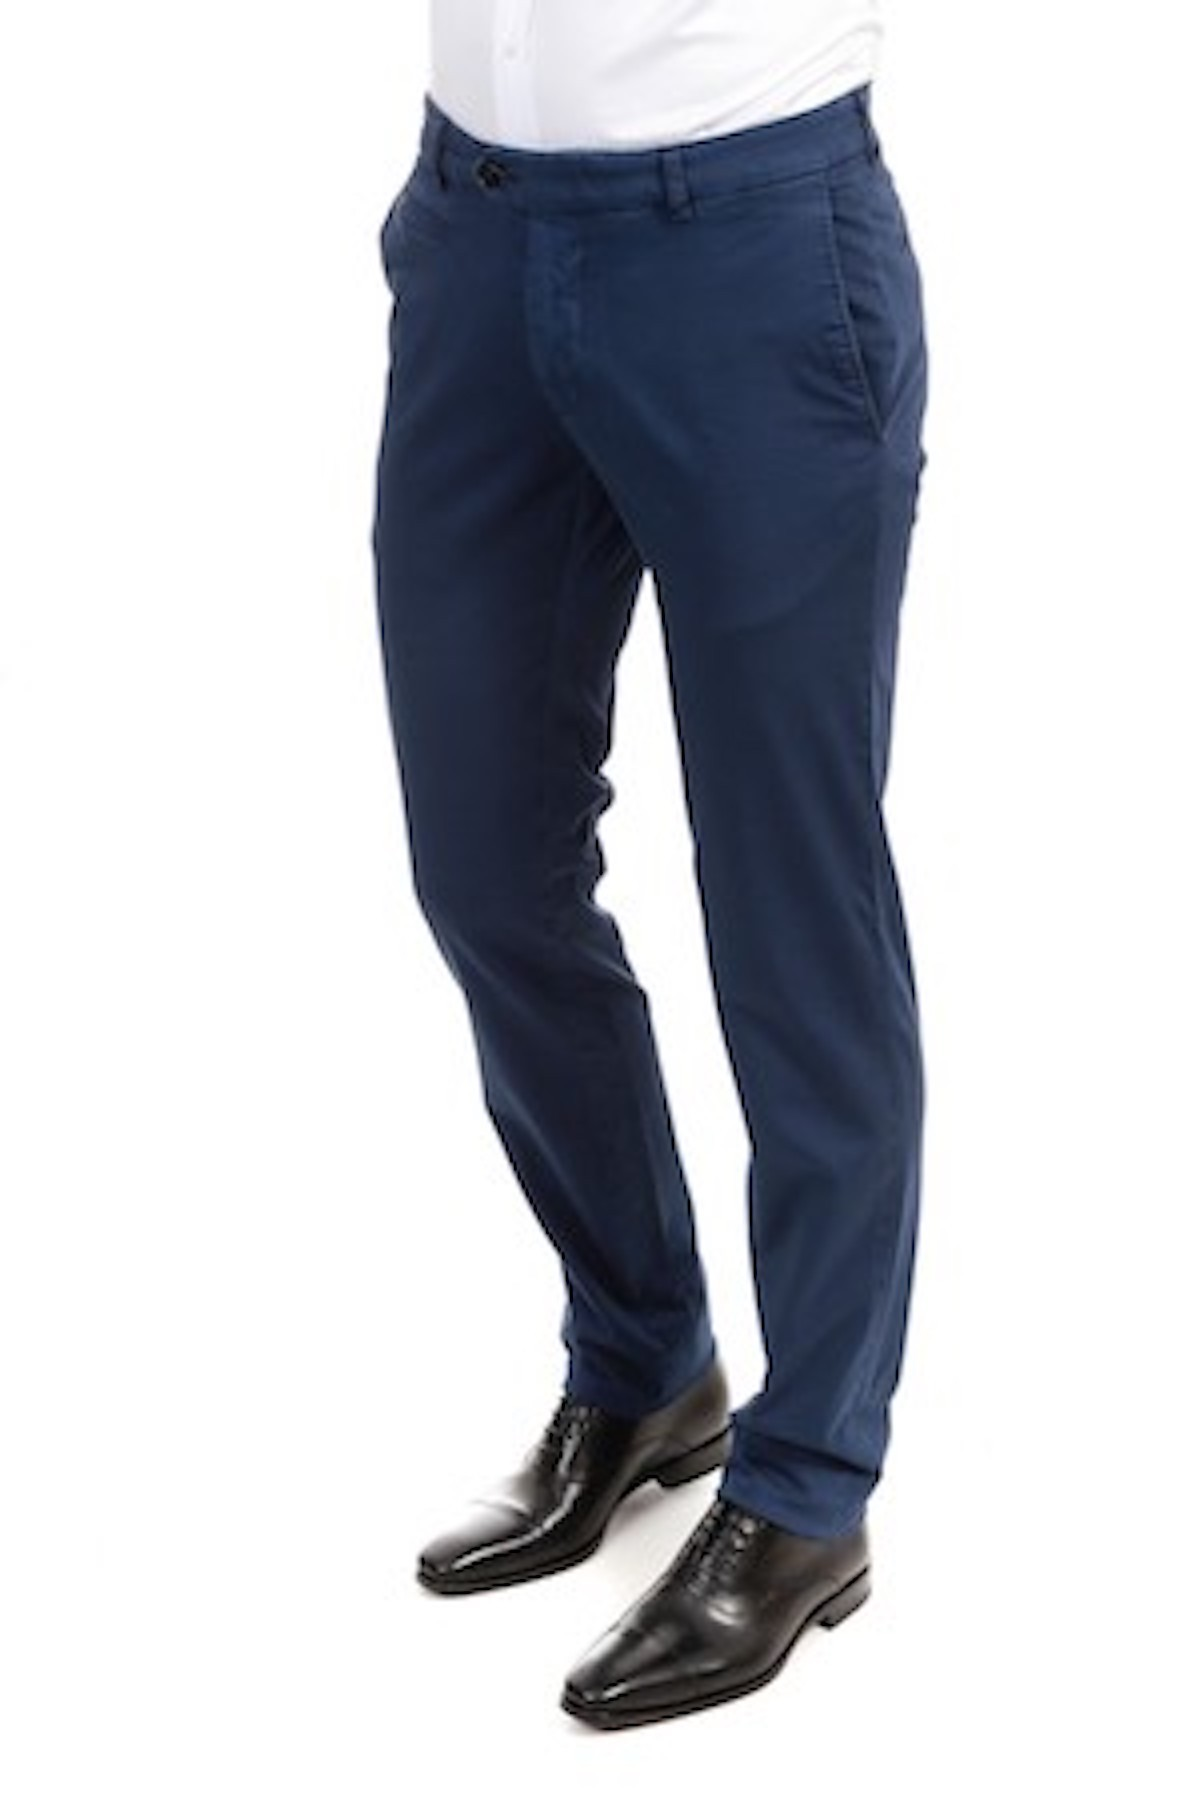 Chino Indigo - Taille 42 l M. Boutoille